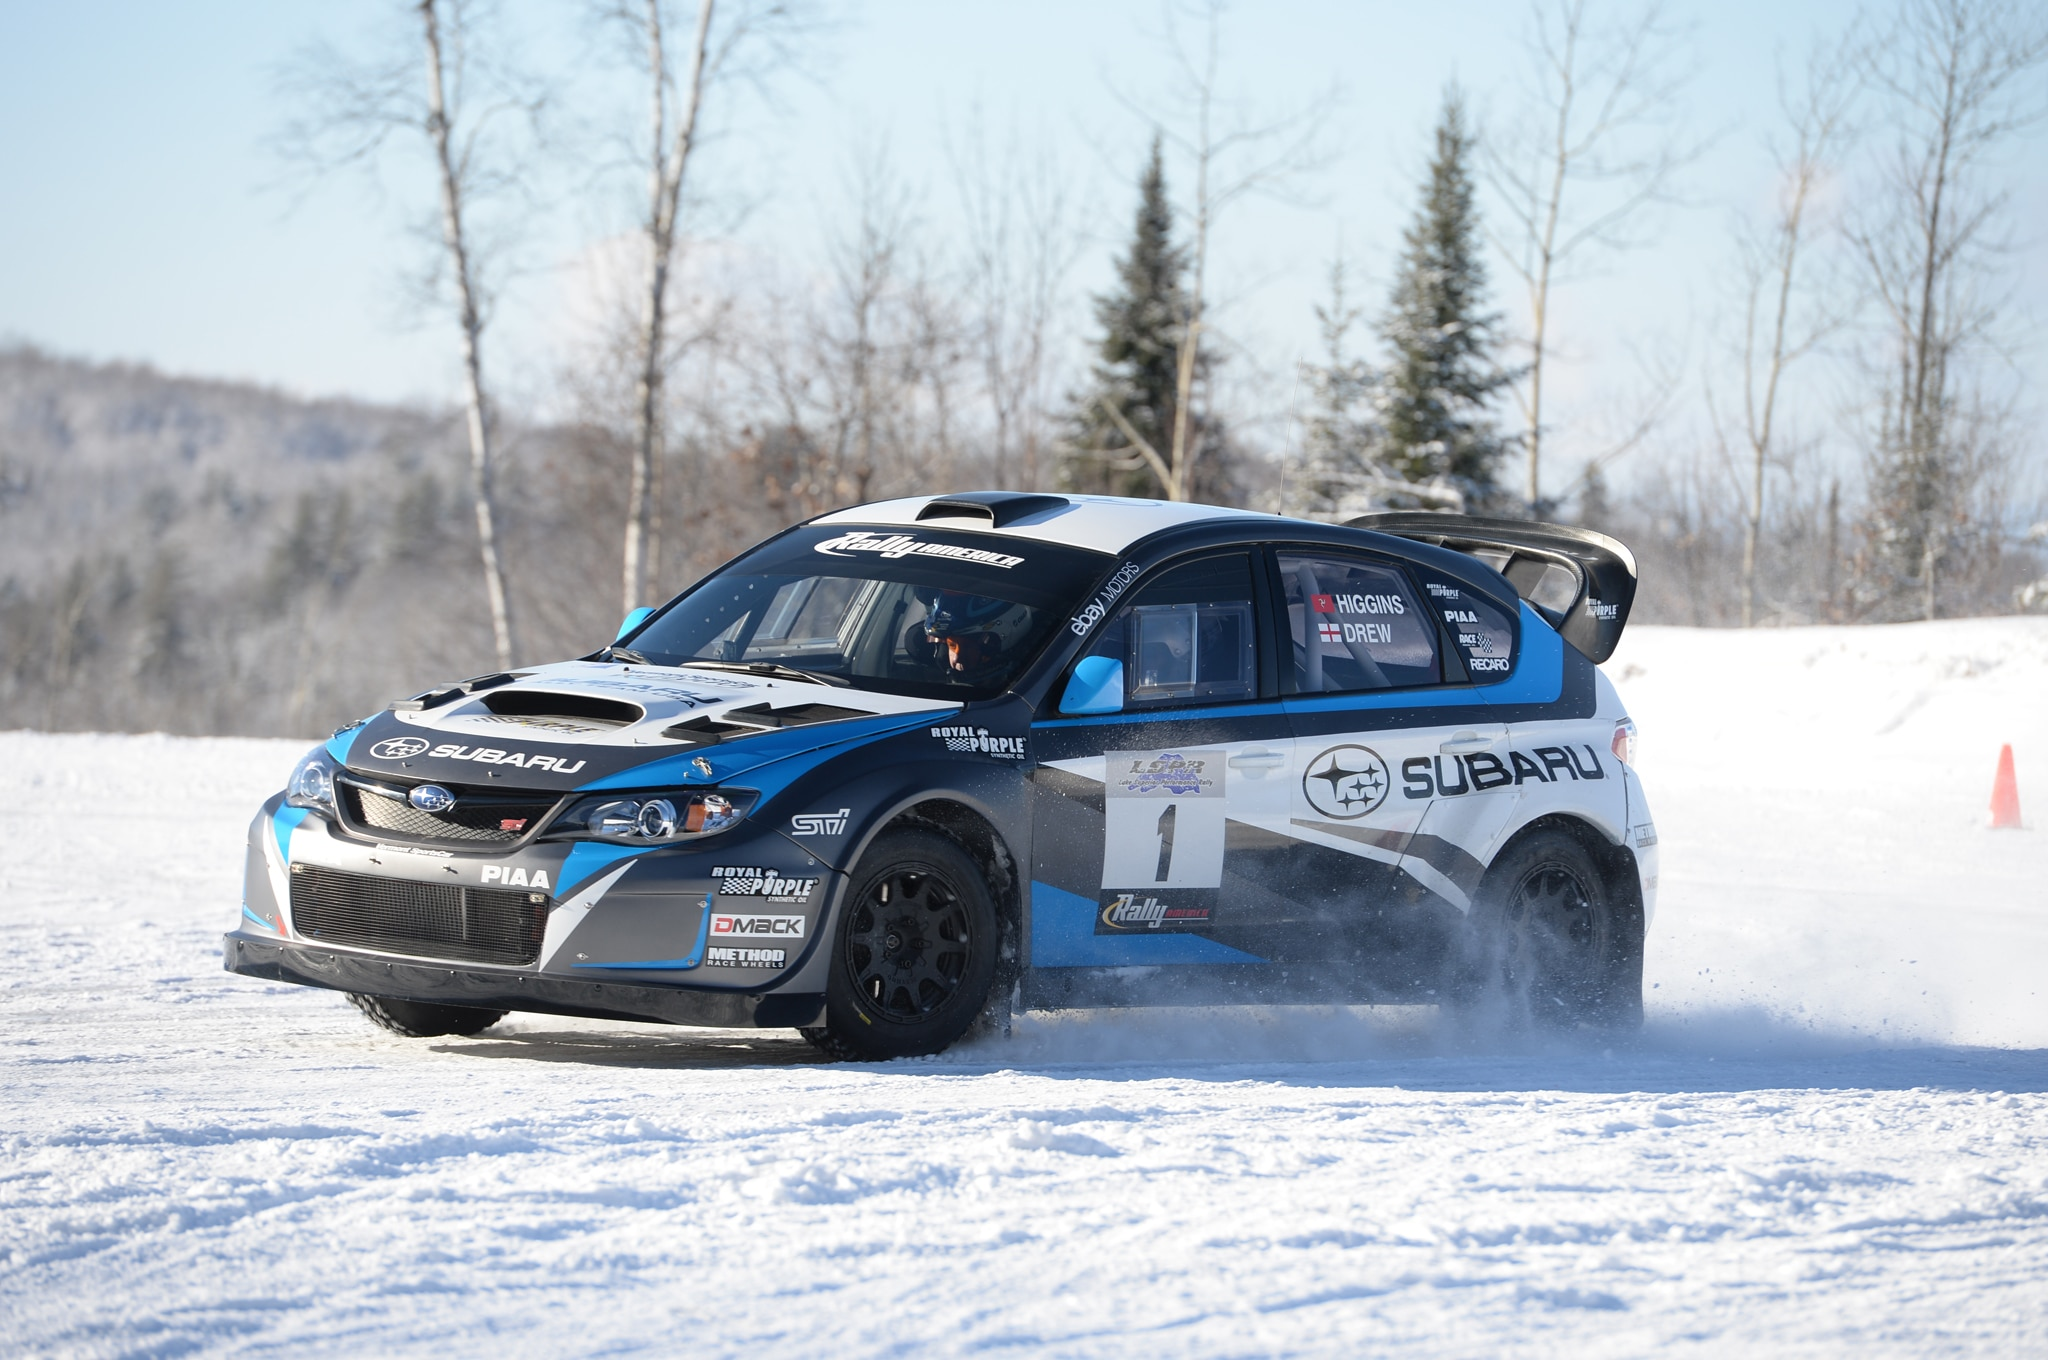 Champion Driving School >> Learning to Drive a Subaru WRX STI Rally Car in the Snow